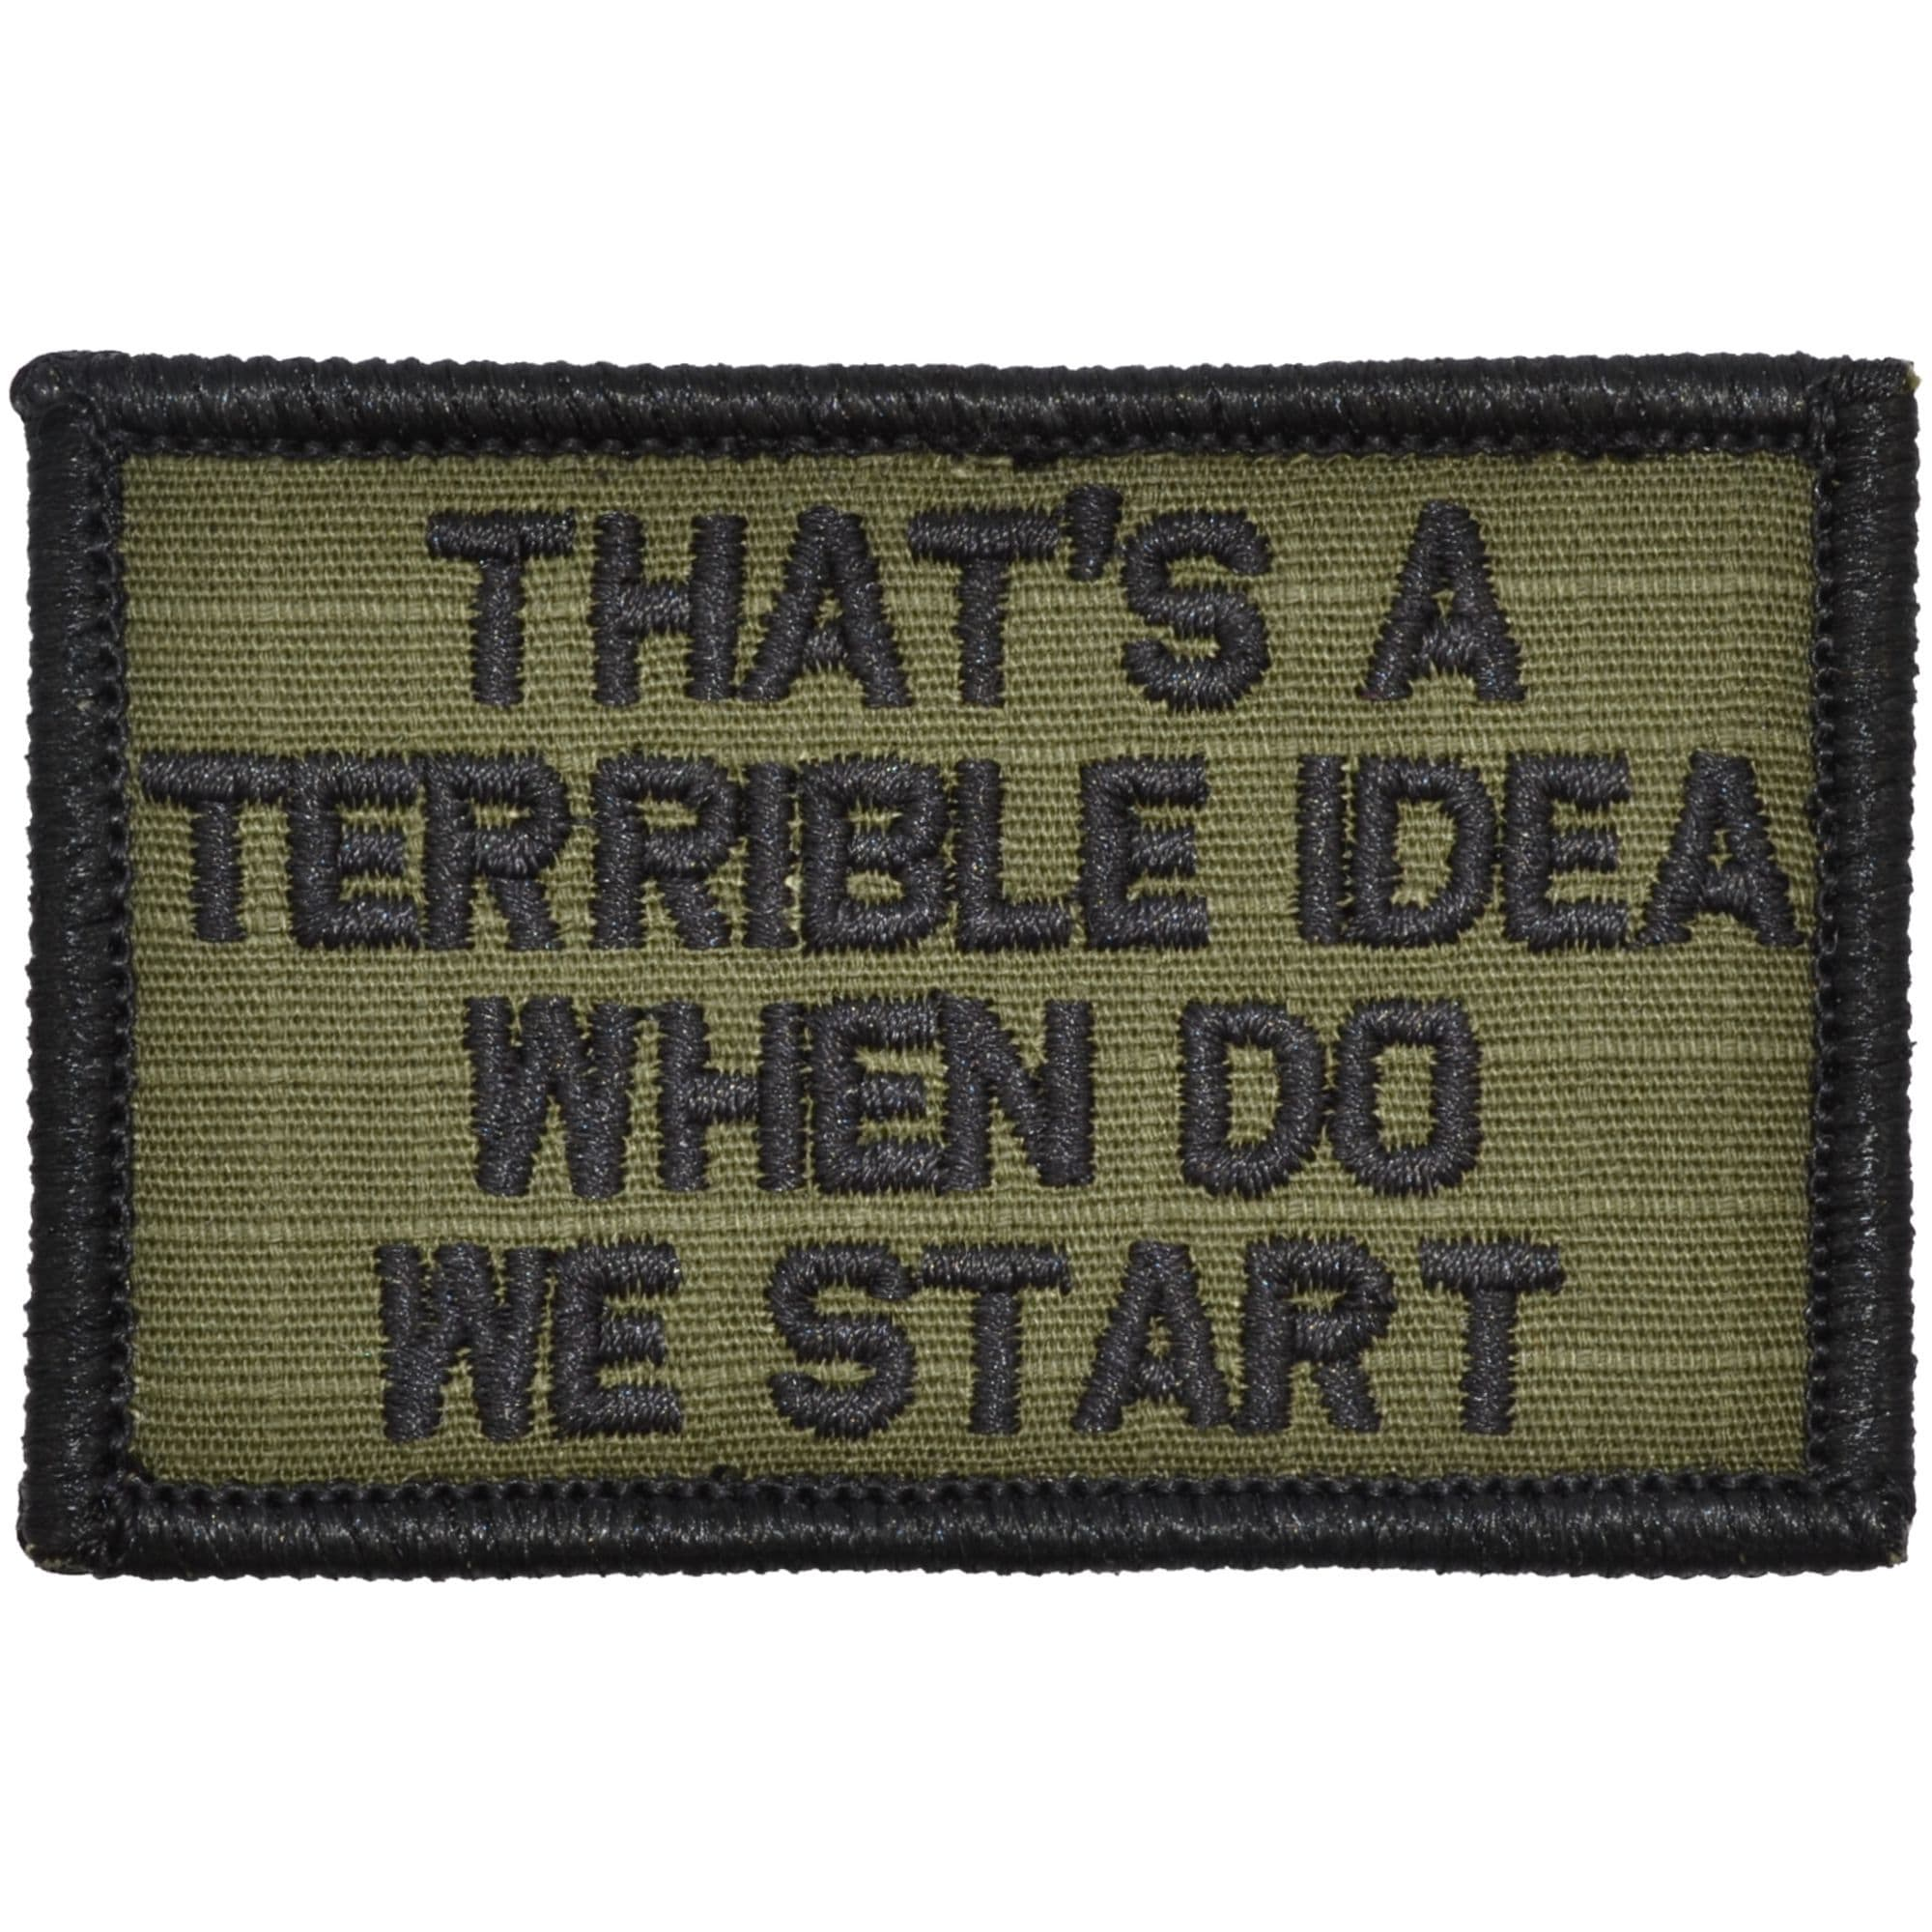 Tactical Gear Junkie Patches Olive Drab That's a Terrible Idea When Do We Start - 2x3 Patch